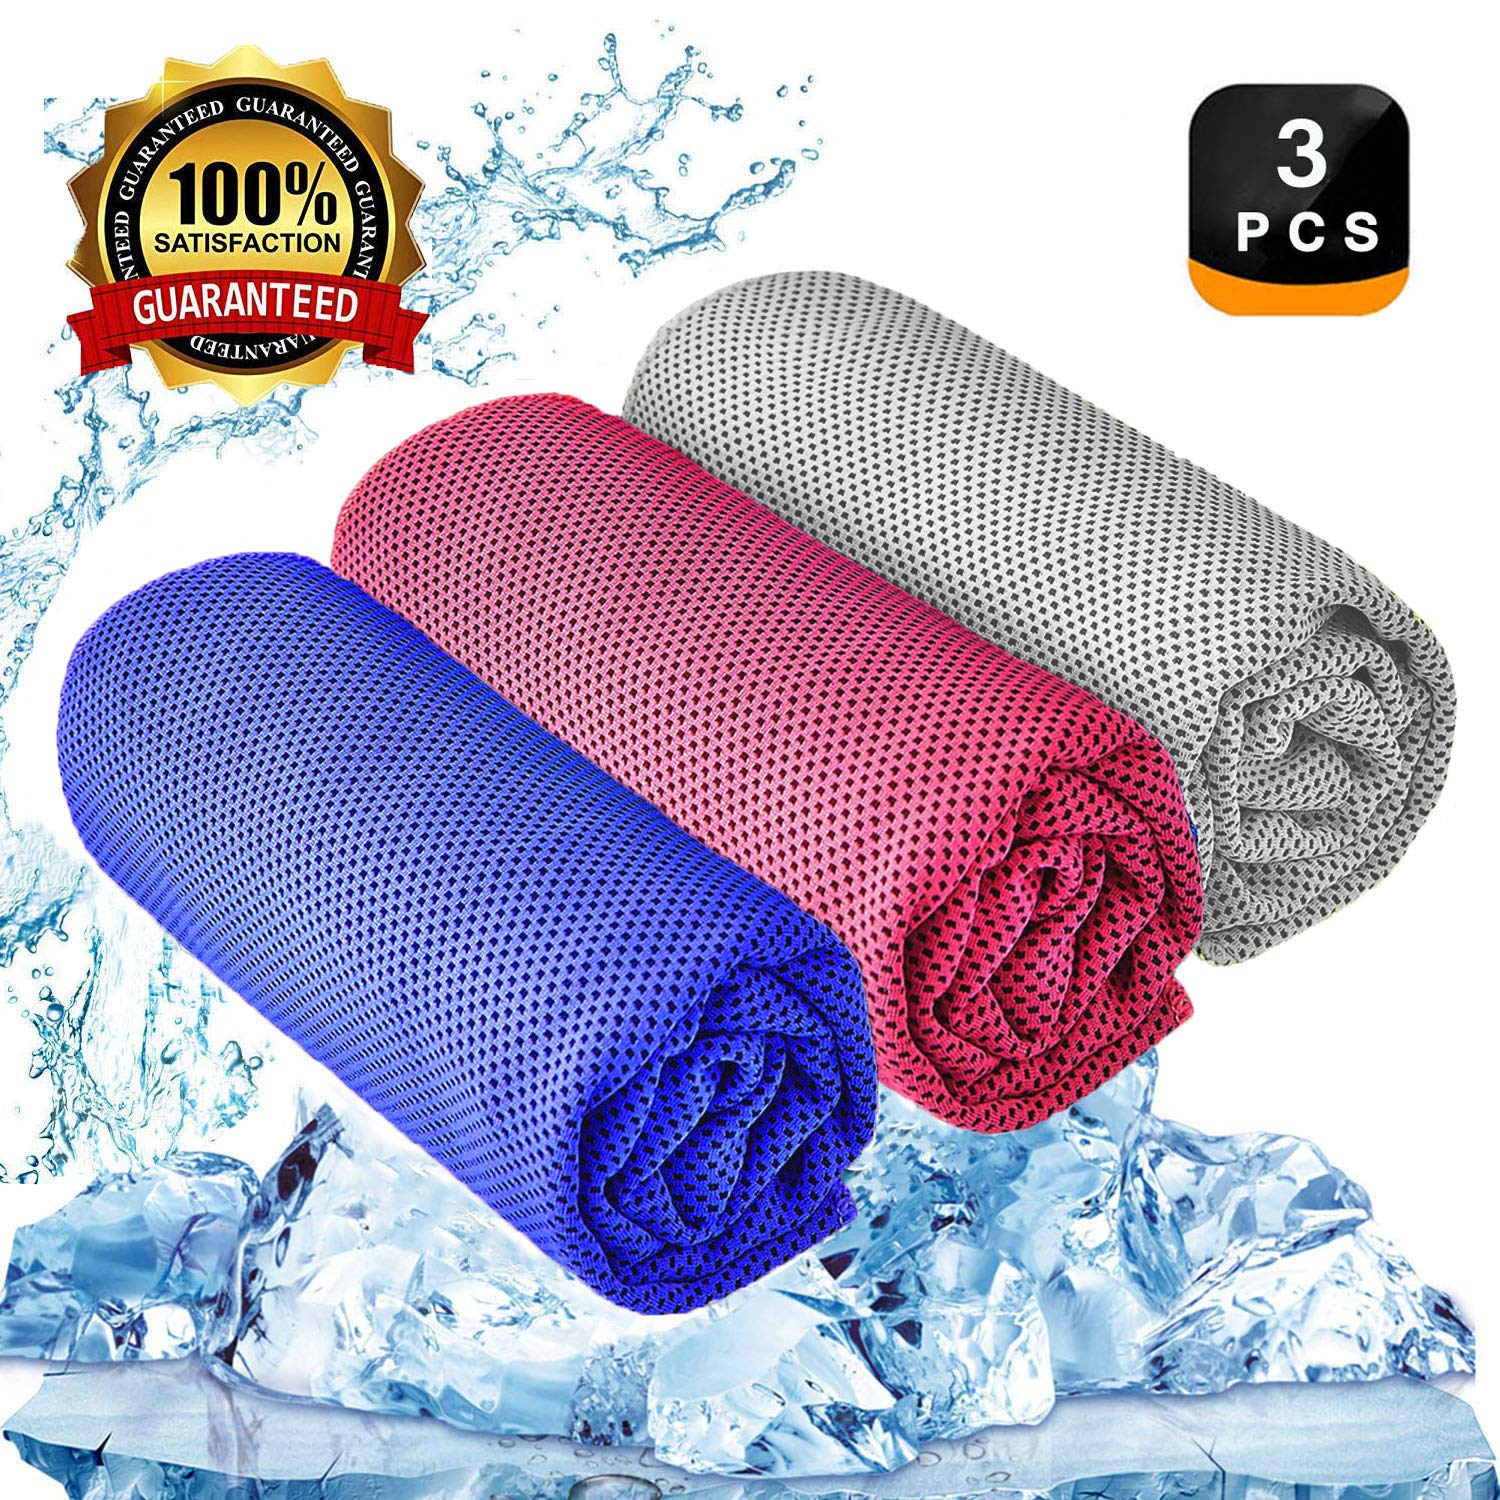 YQXCC Cooling Towel 3 Pcs (47''x12'') Microfiber Towel for Instant Cooling Relief, Cool Cold Towel for Yoga Golf Travel Gym Sports Camping Football & Outdoor Sports (Dark Blue/Rose Red/Light Gray) by YQXCC